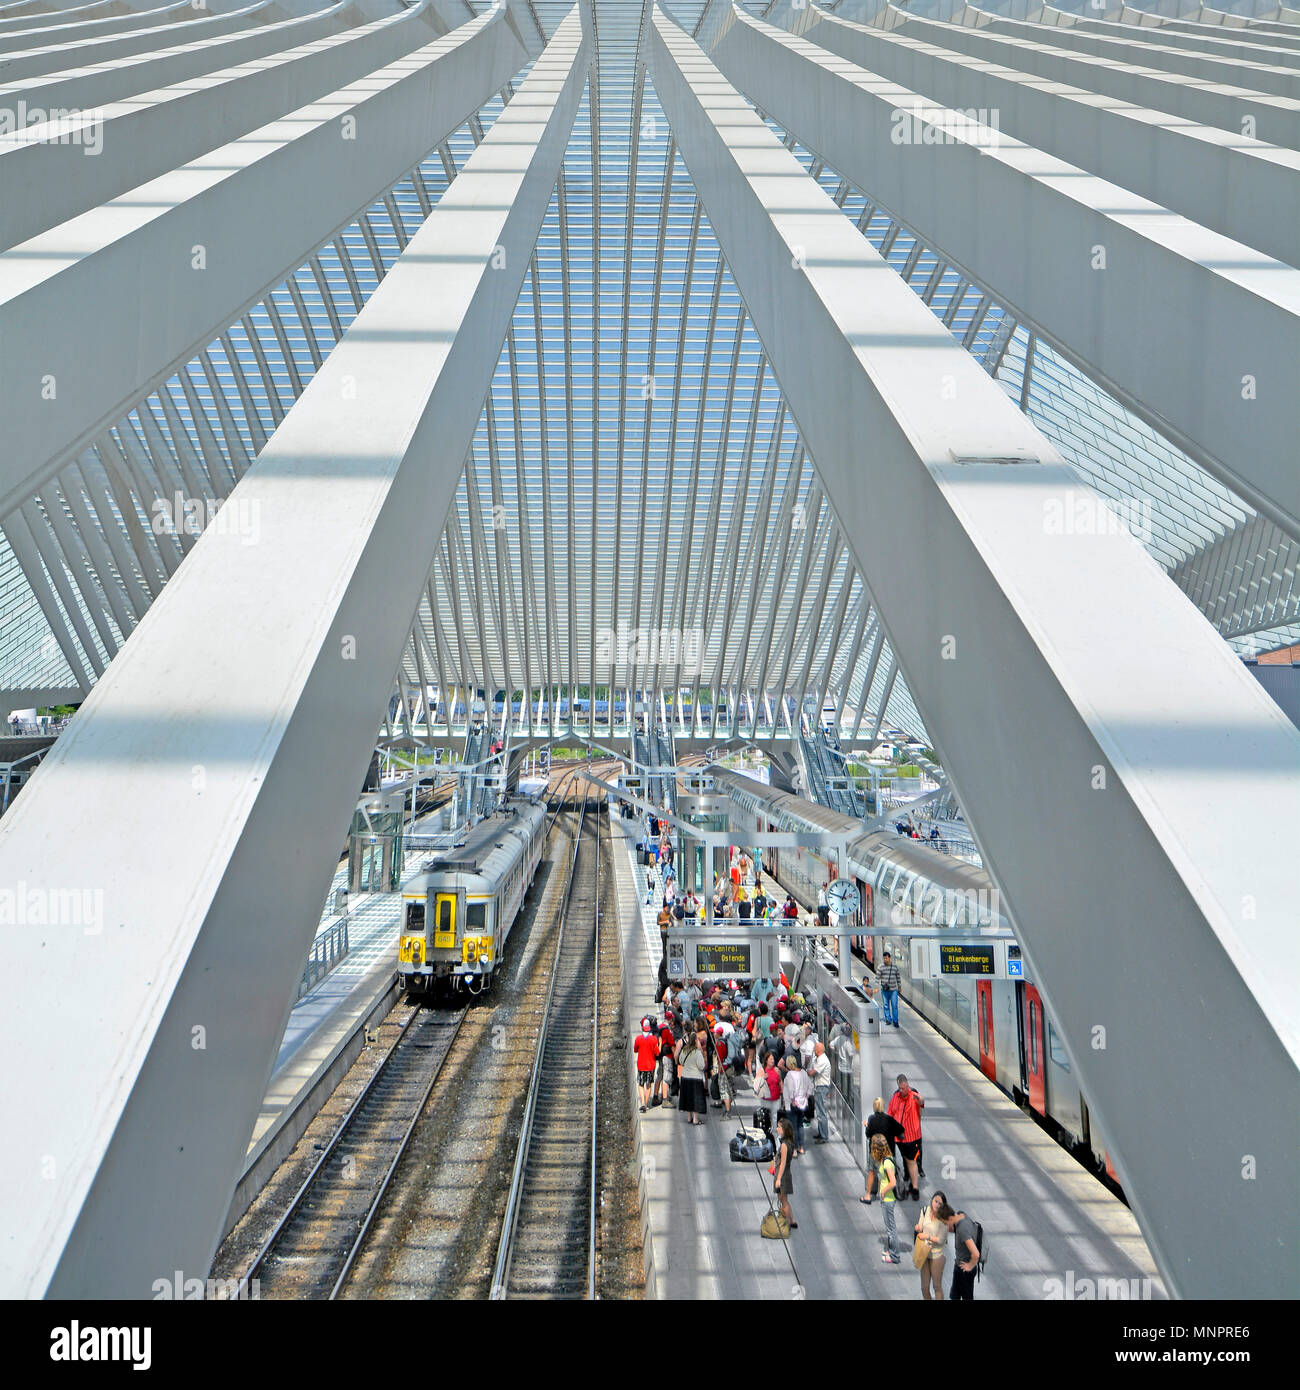 Aerial or birds eye view from above looking down on busy train station platform group of people waiting in modern public transport building glass roof - Stock Image